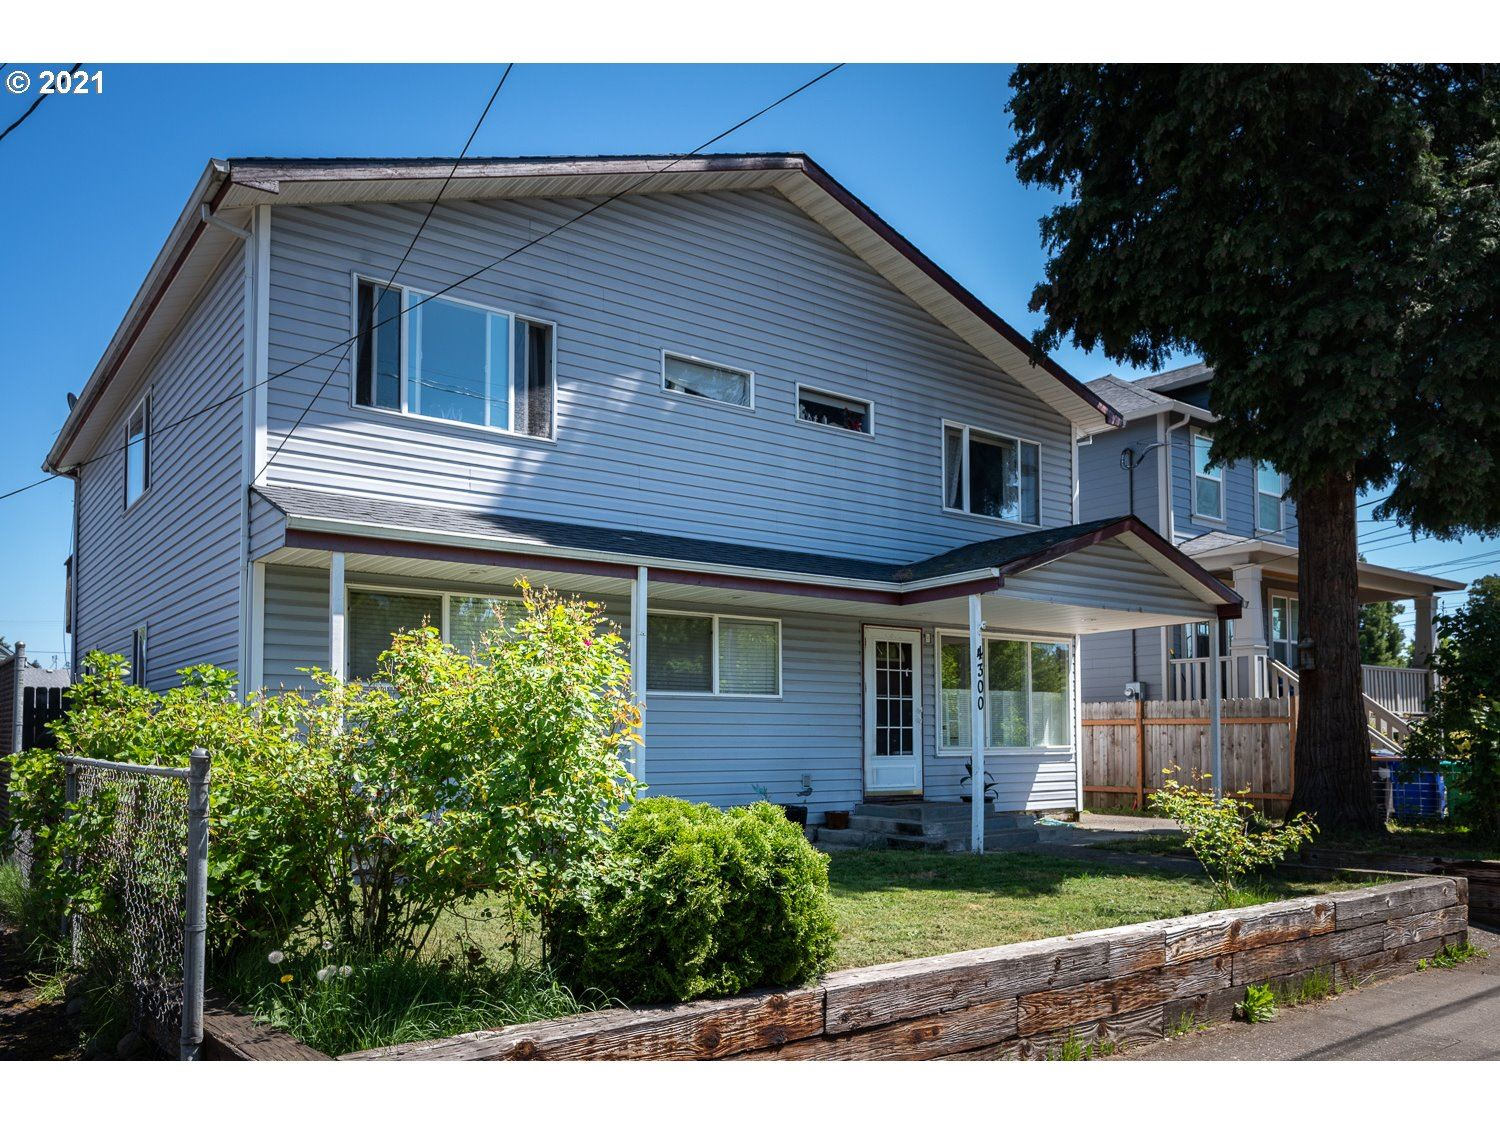 4300 SE 79TH AVE, Portland, OR 97206 - MLS#: 21396101